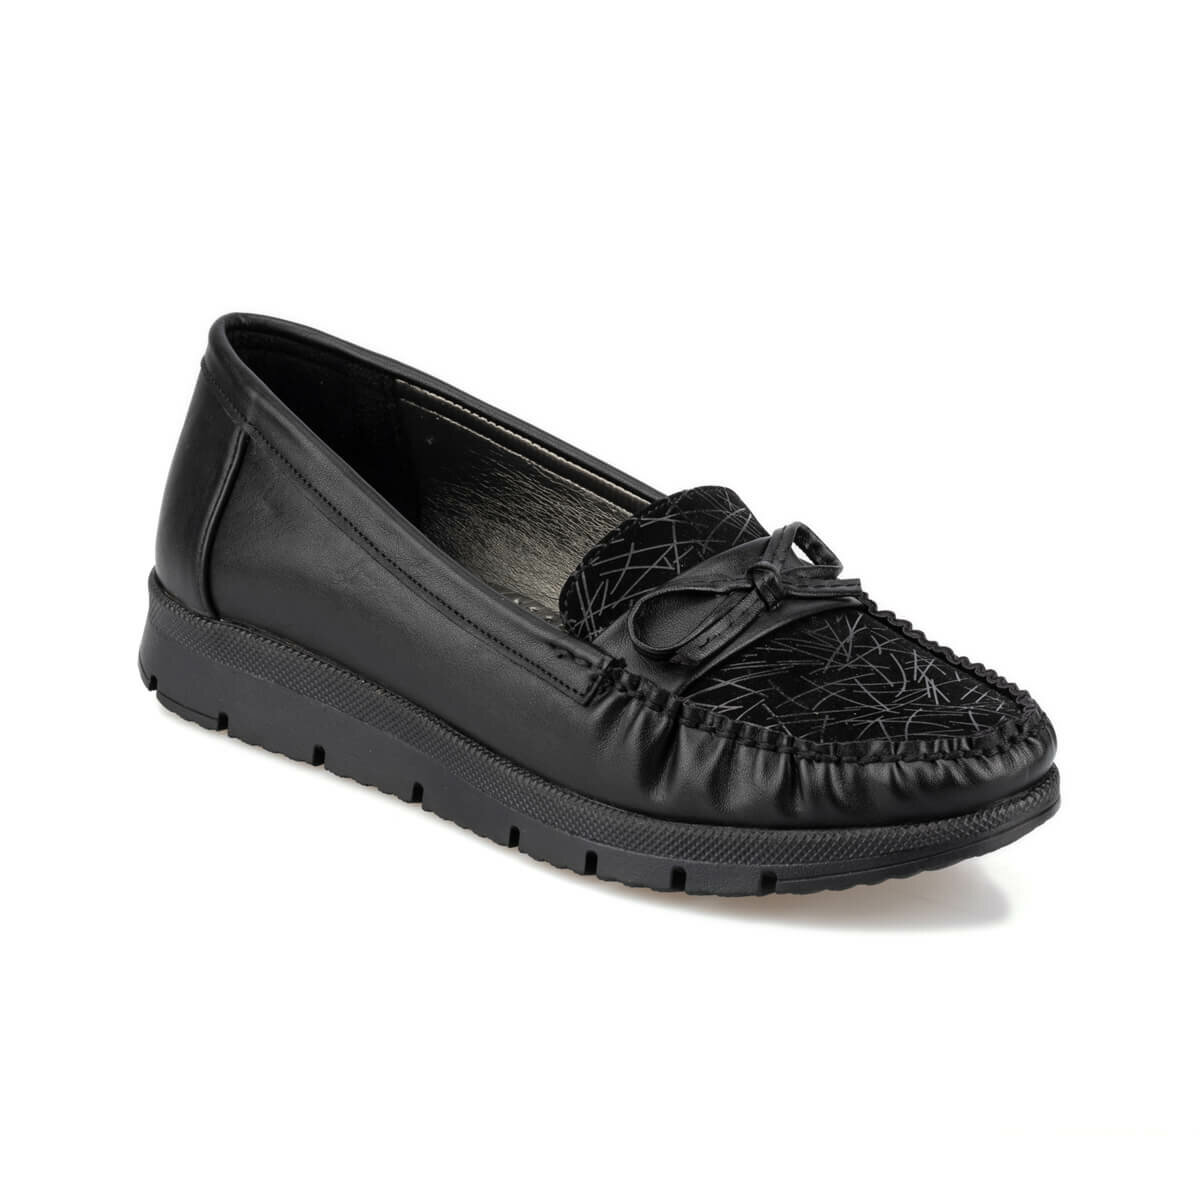 FLO 92.151012.Z Black Women Loafer Shoes Polaris